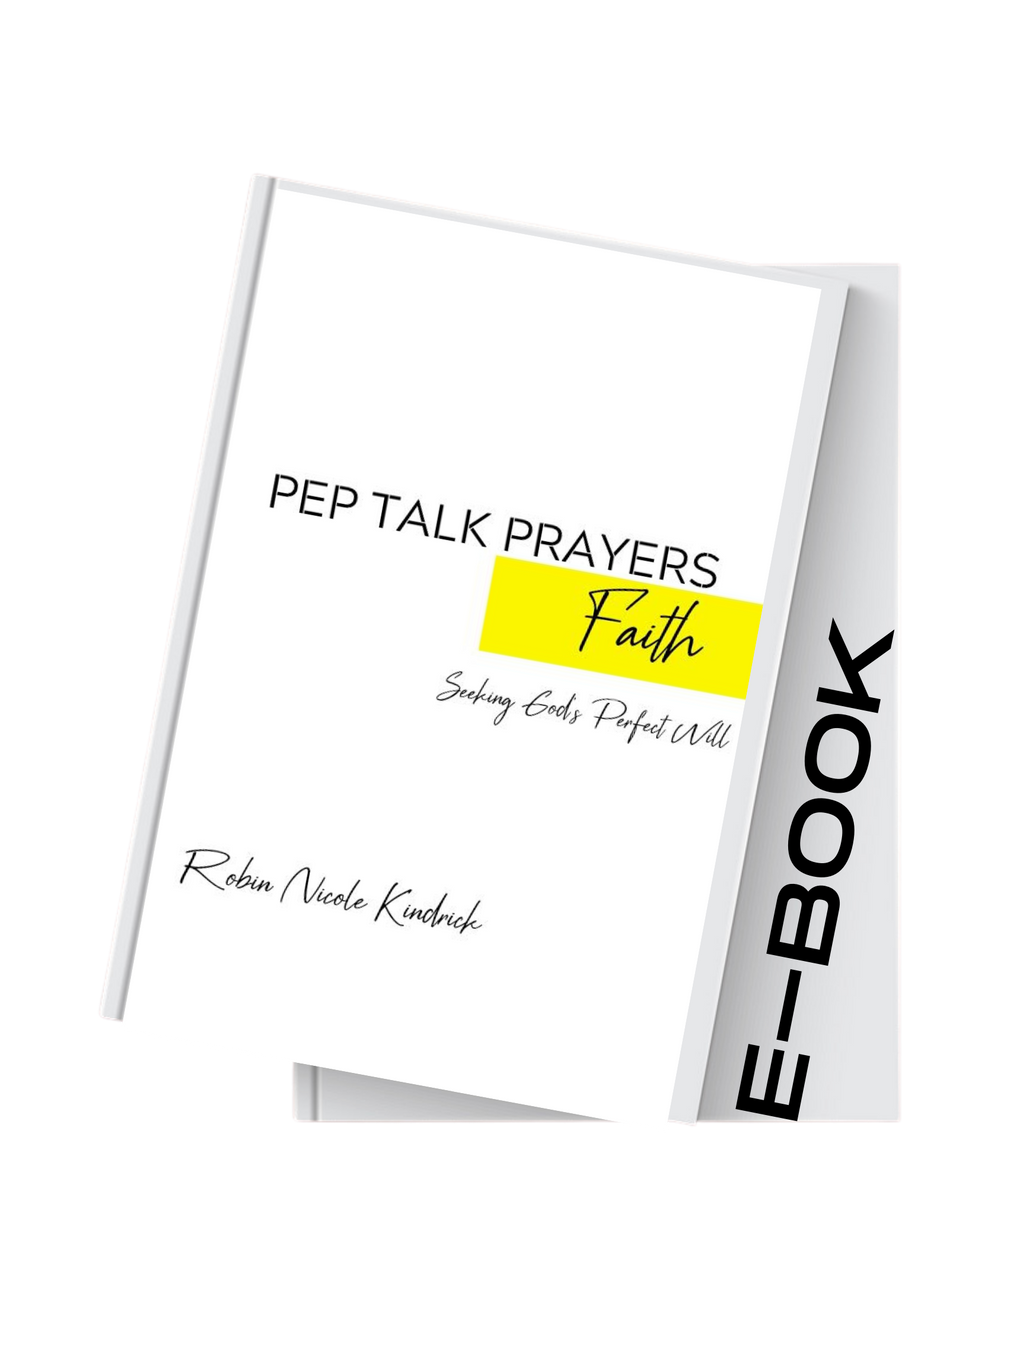 PEP TALK PRAYERS ON FAITH eBOOK - Download